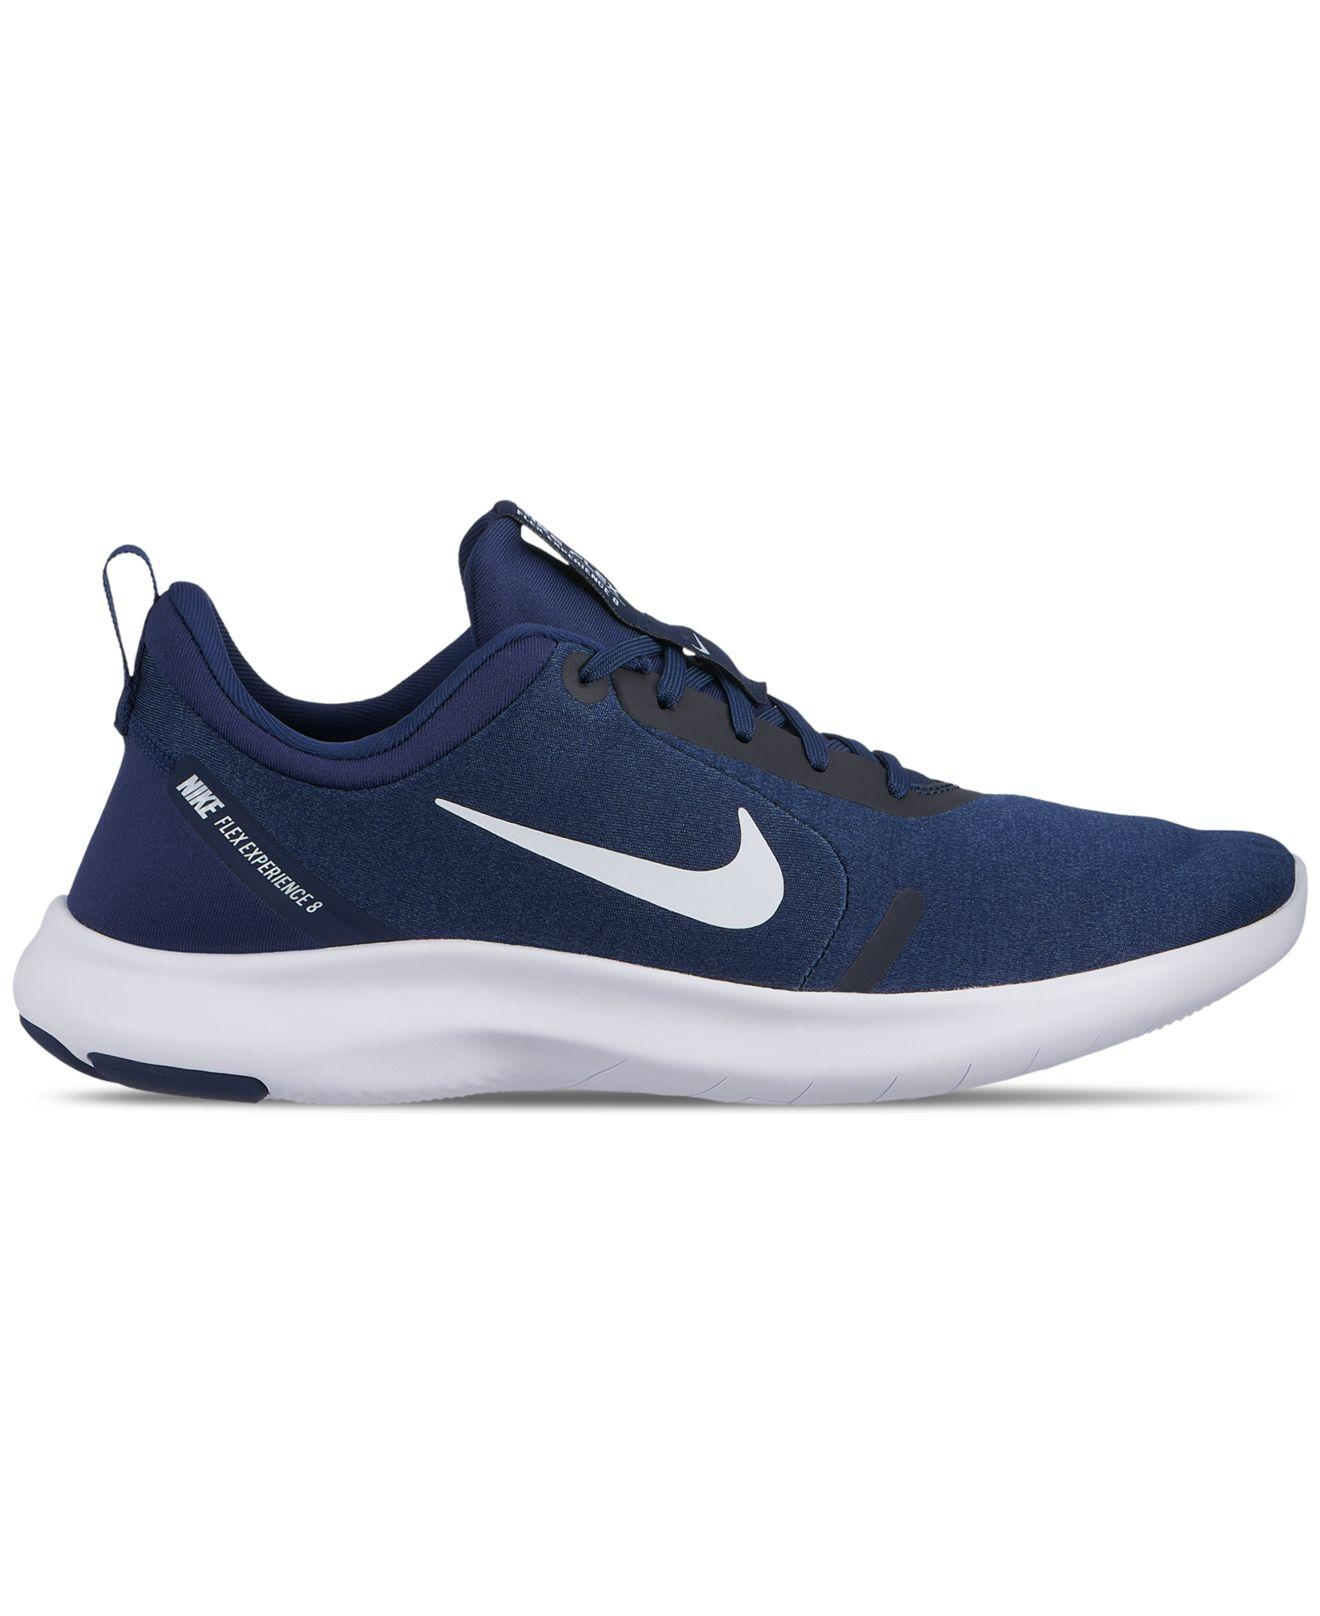 7d13a2a760dd Lyst - Nike Flex Experience Rn 8 Running Sneakers From Finish Line ...